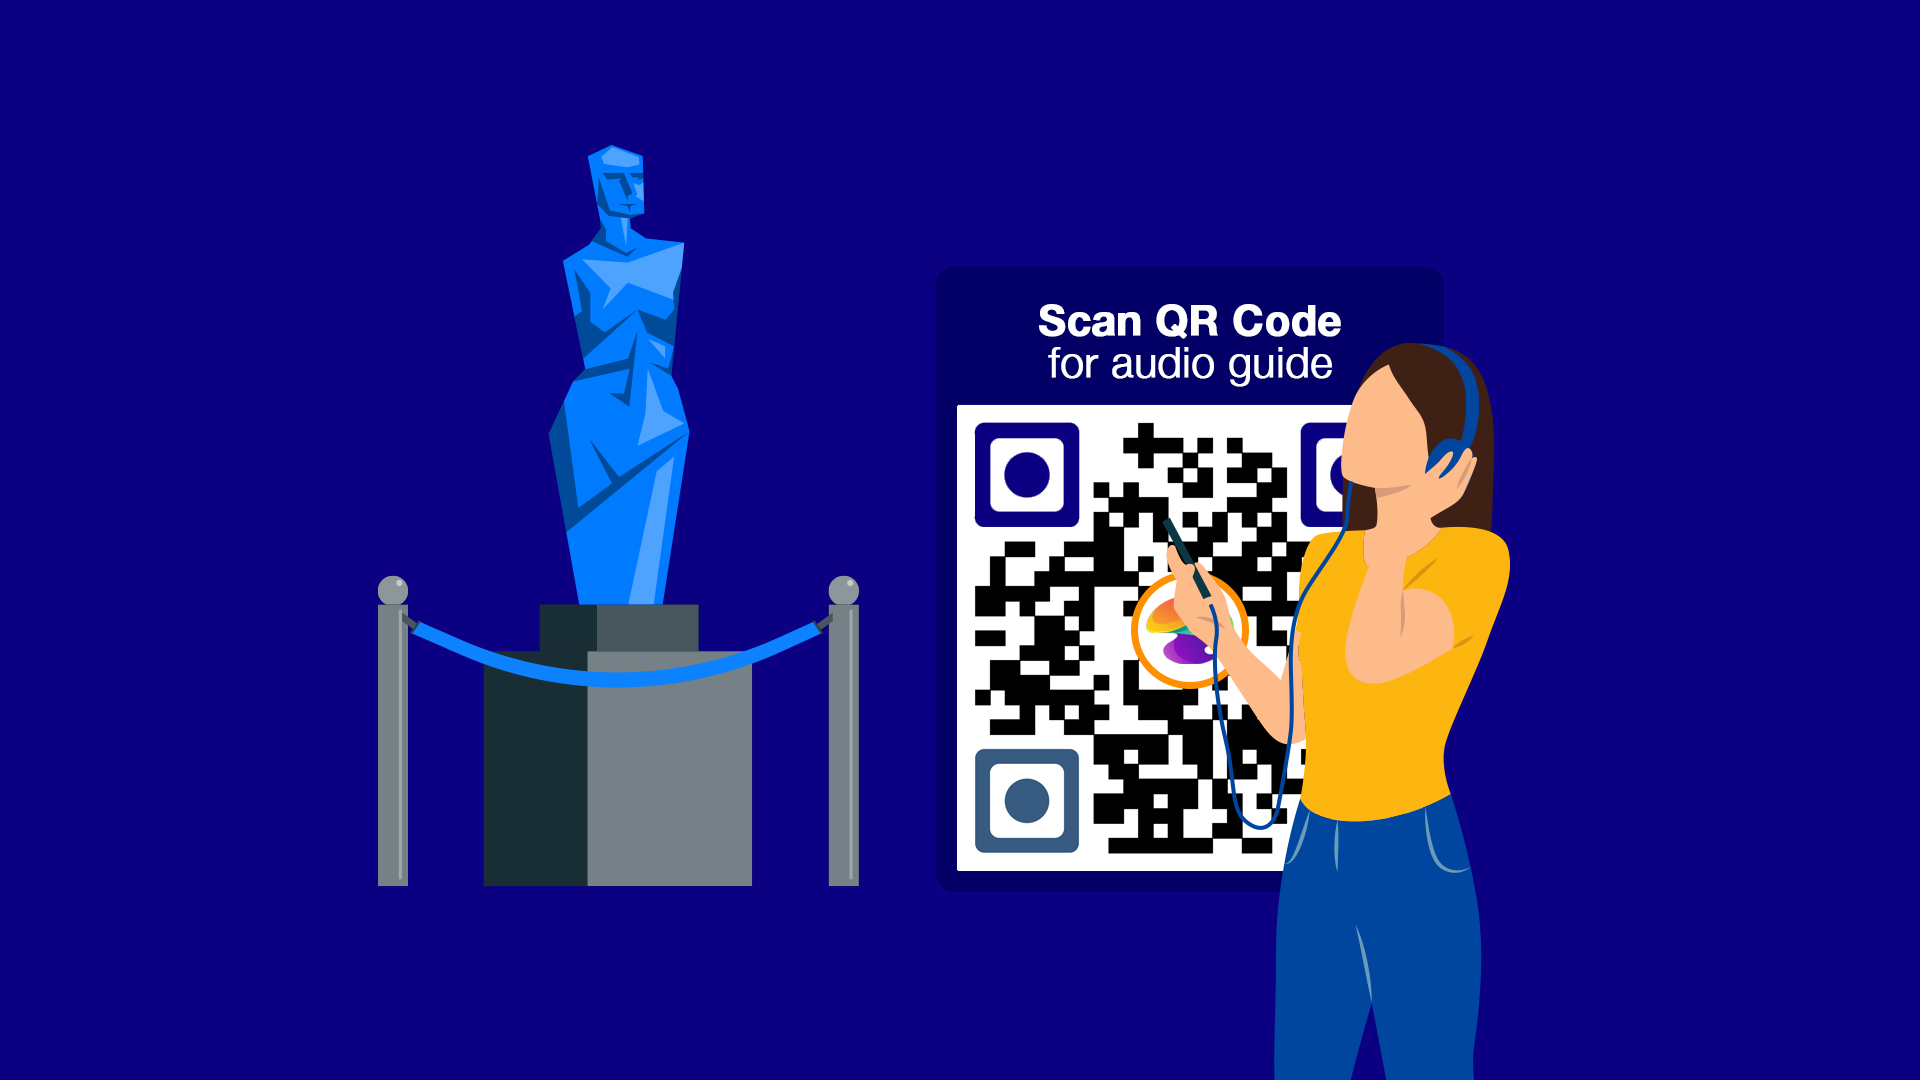 qr code for audio guide